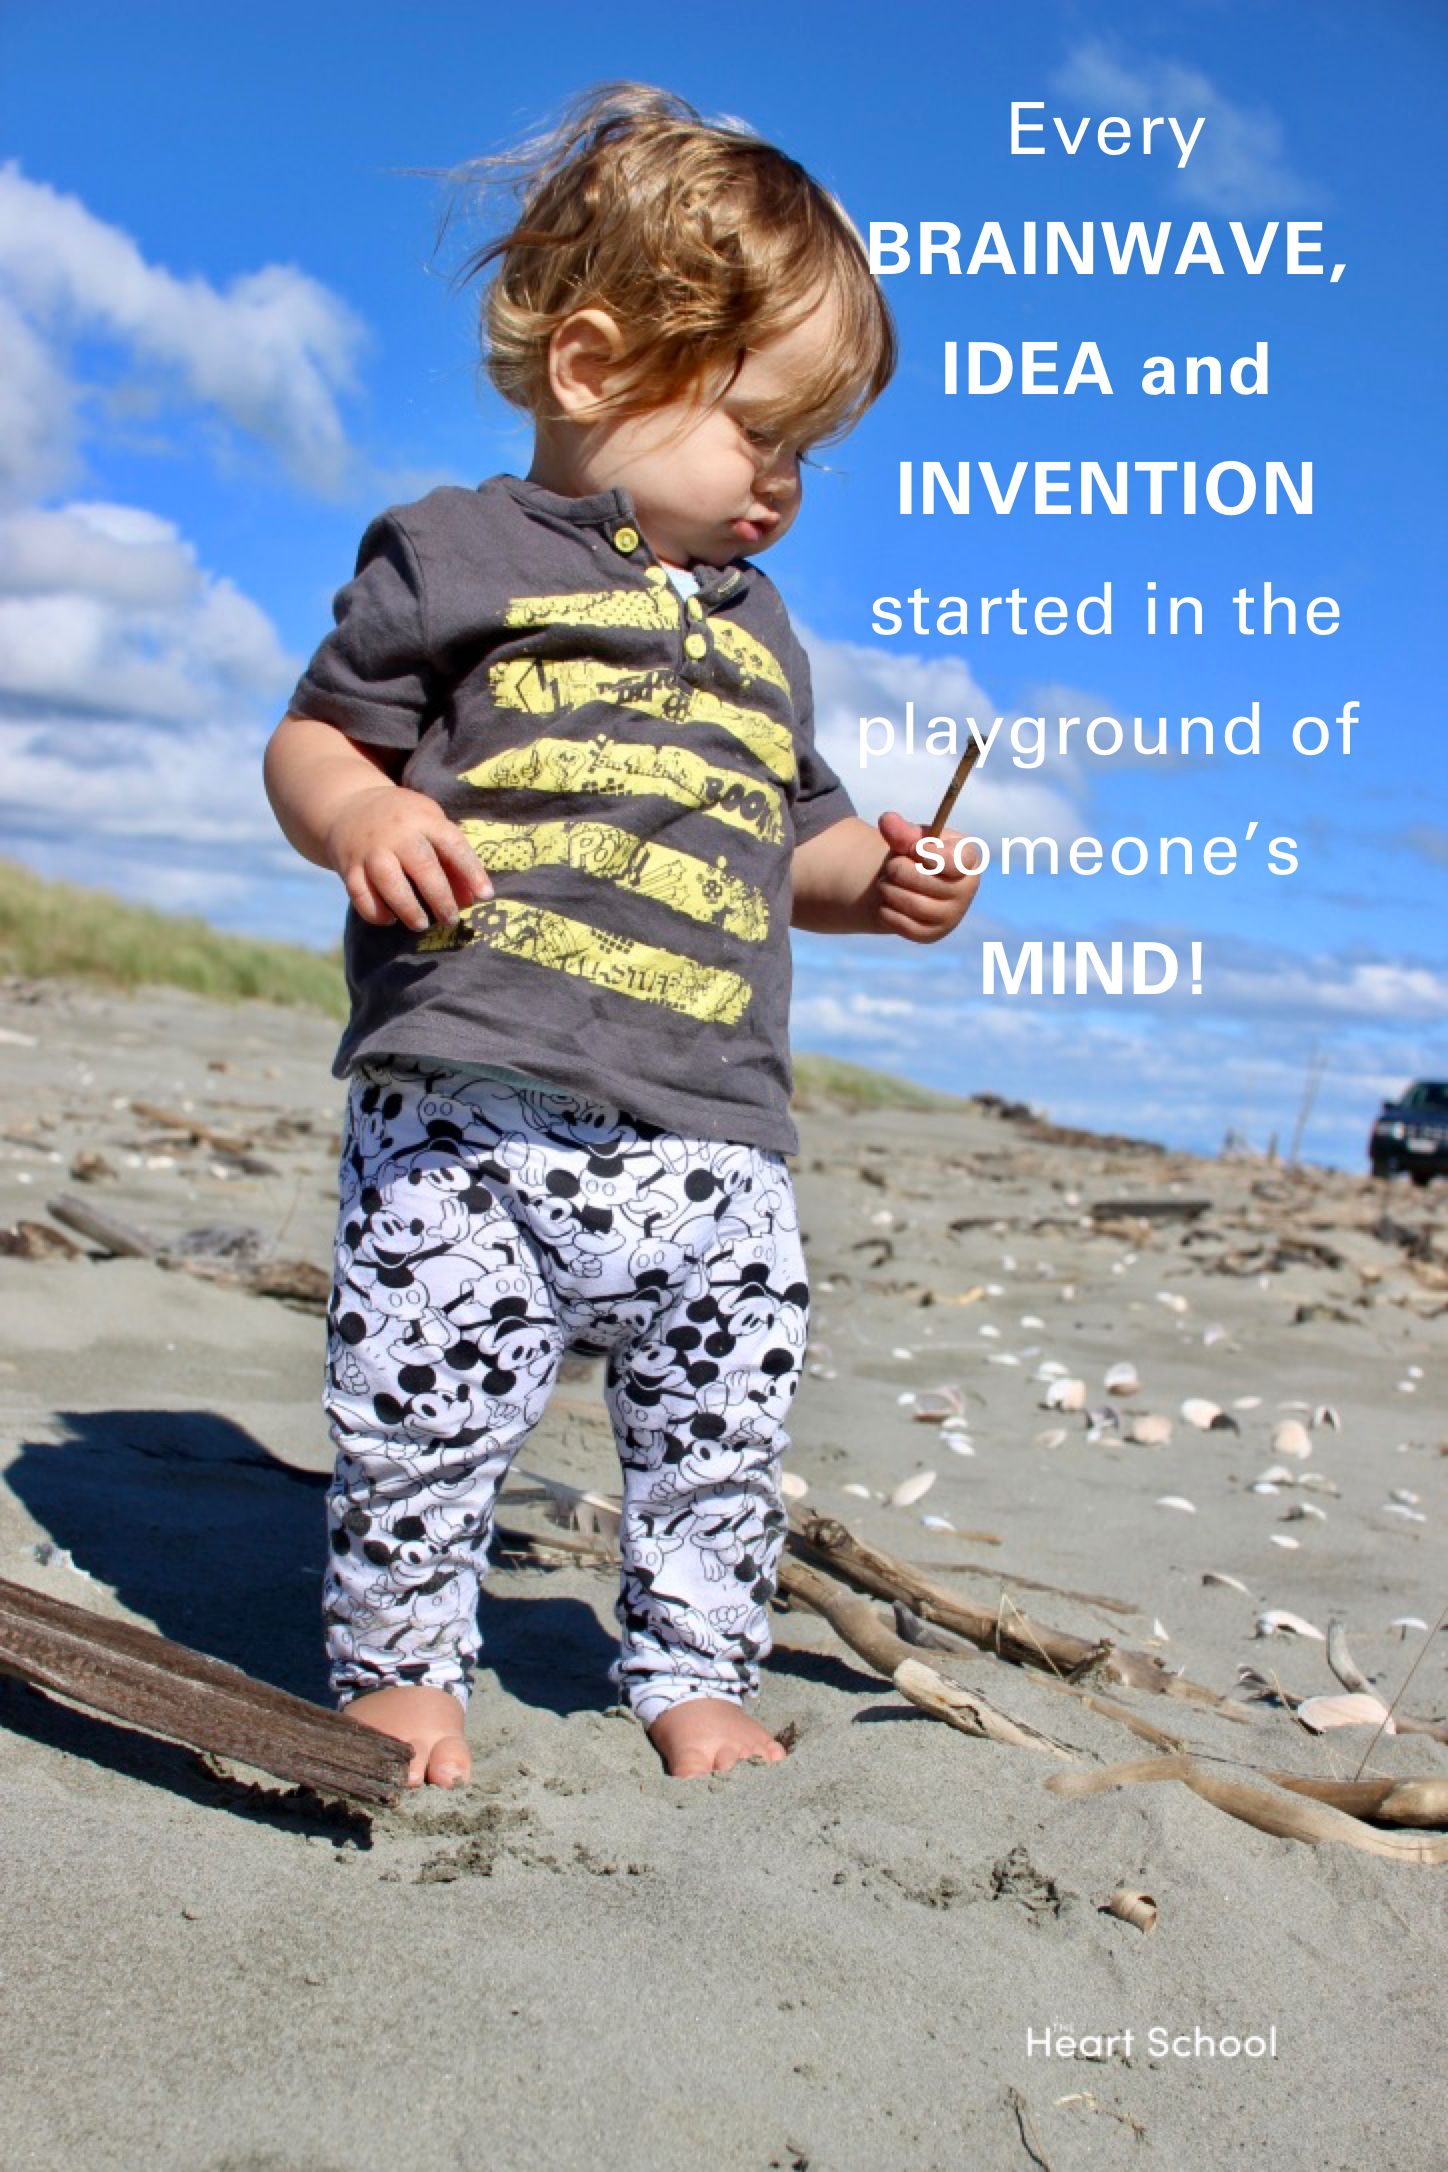 Children are natural inventors, designers and creators. Through play they take what they know of the world, imitate and experiment. They dwell in possibility, and the best materials are those that follow play's golden rule - anything can be anything. A piece of wood can be a thousand things!